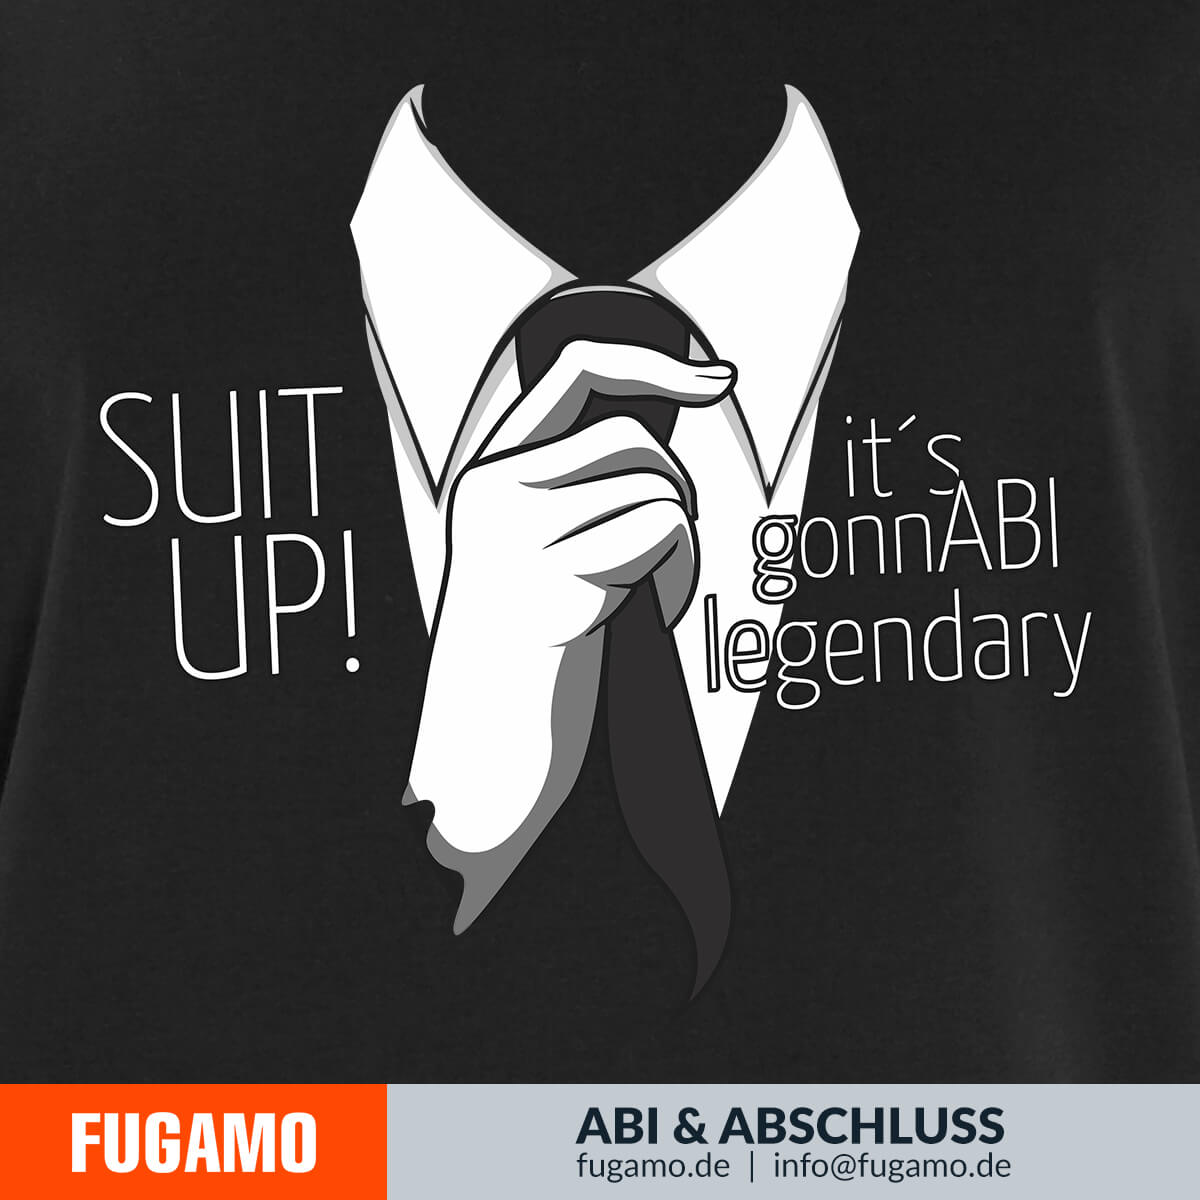 Suit up! It's gonnABI legendary 02